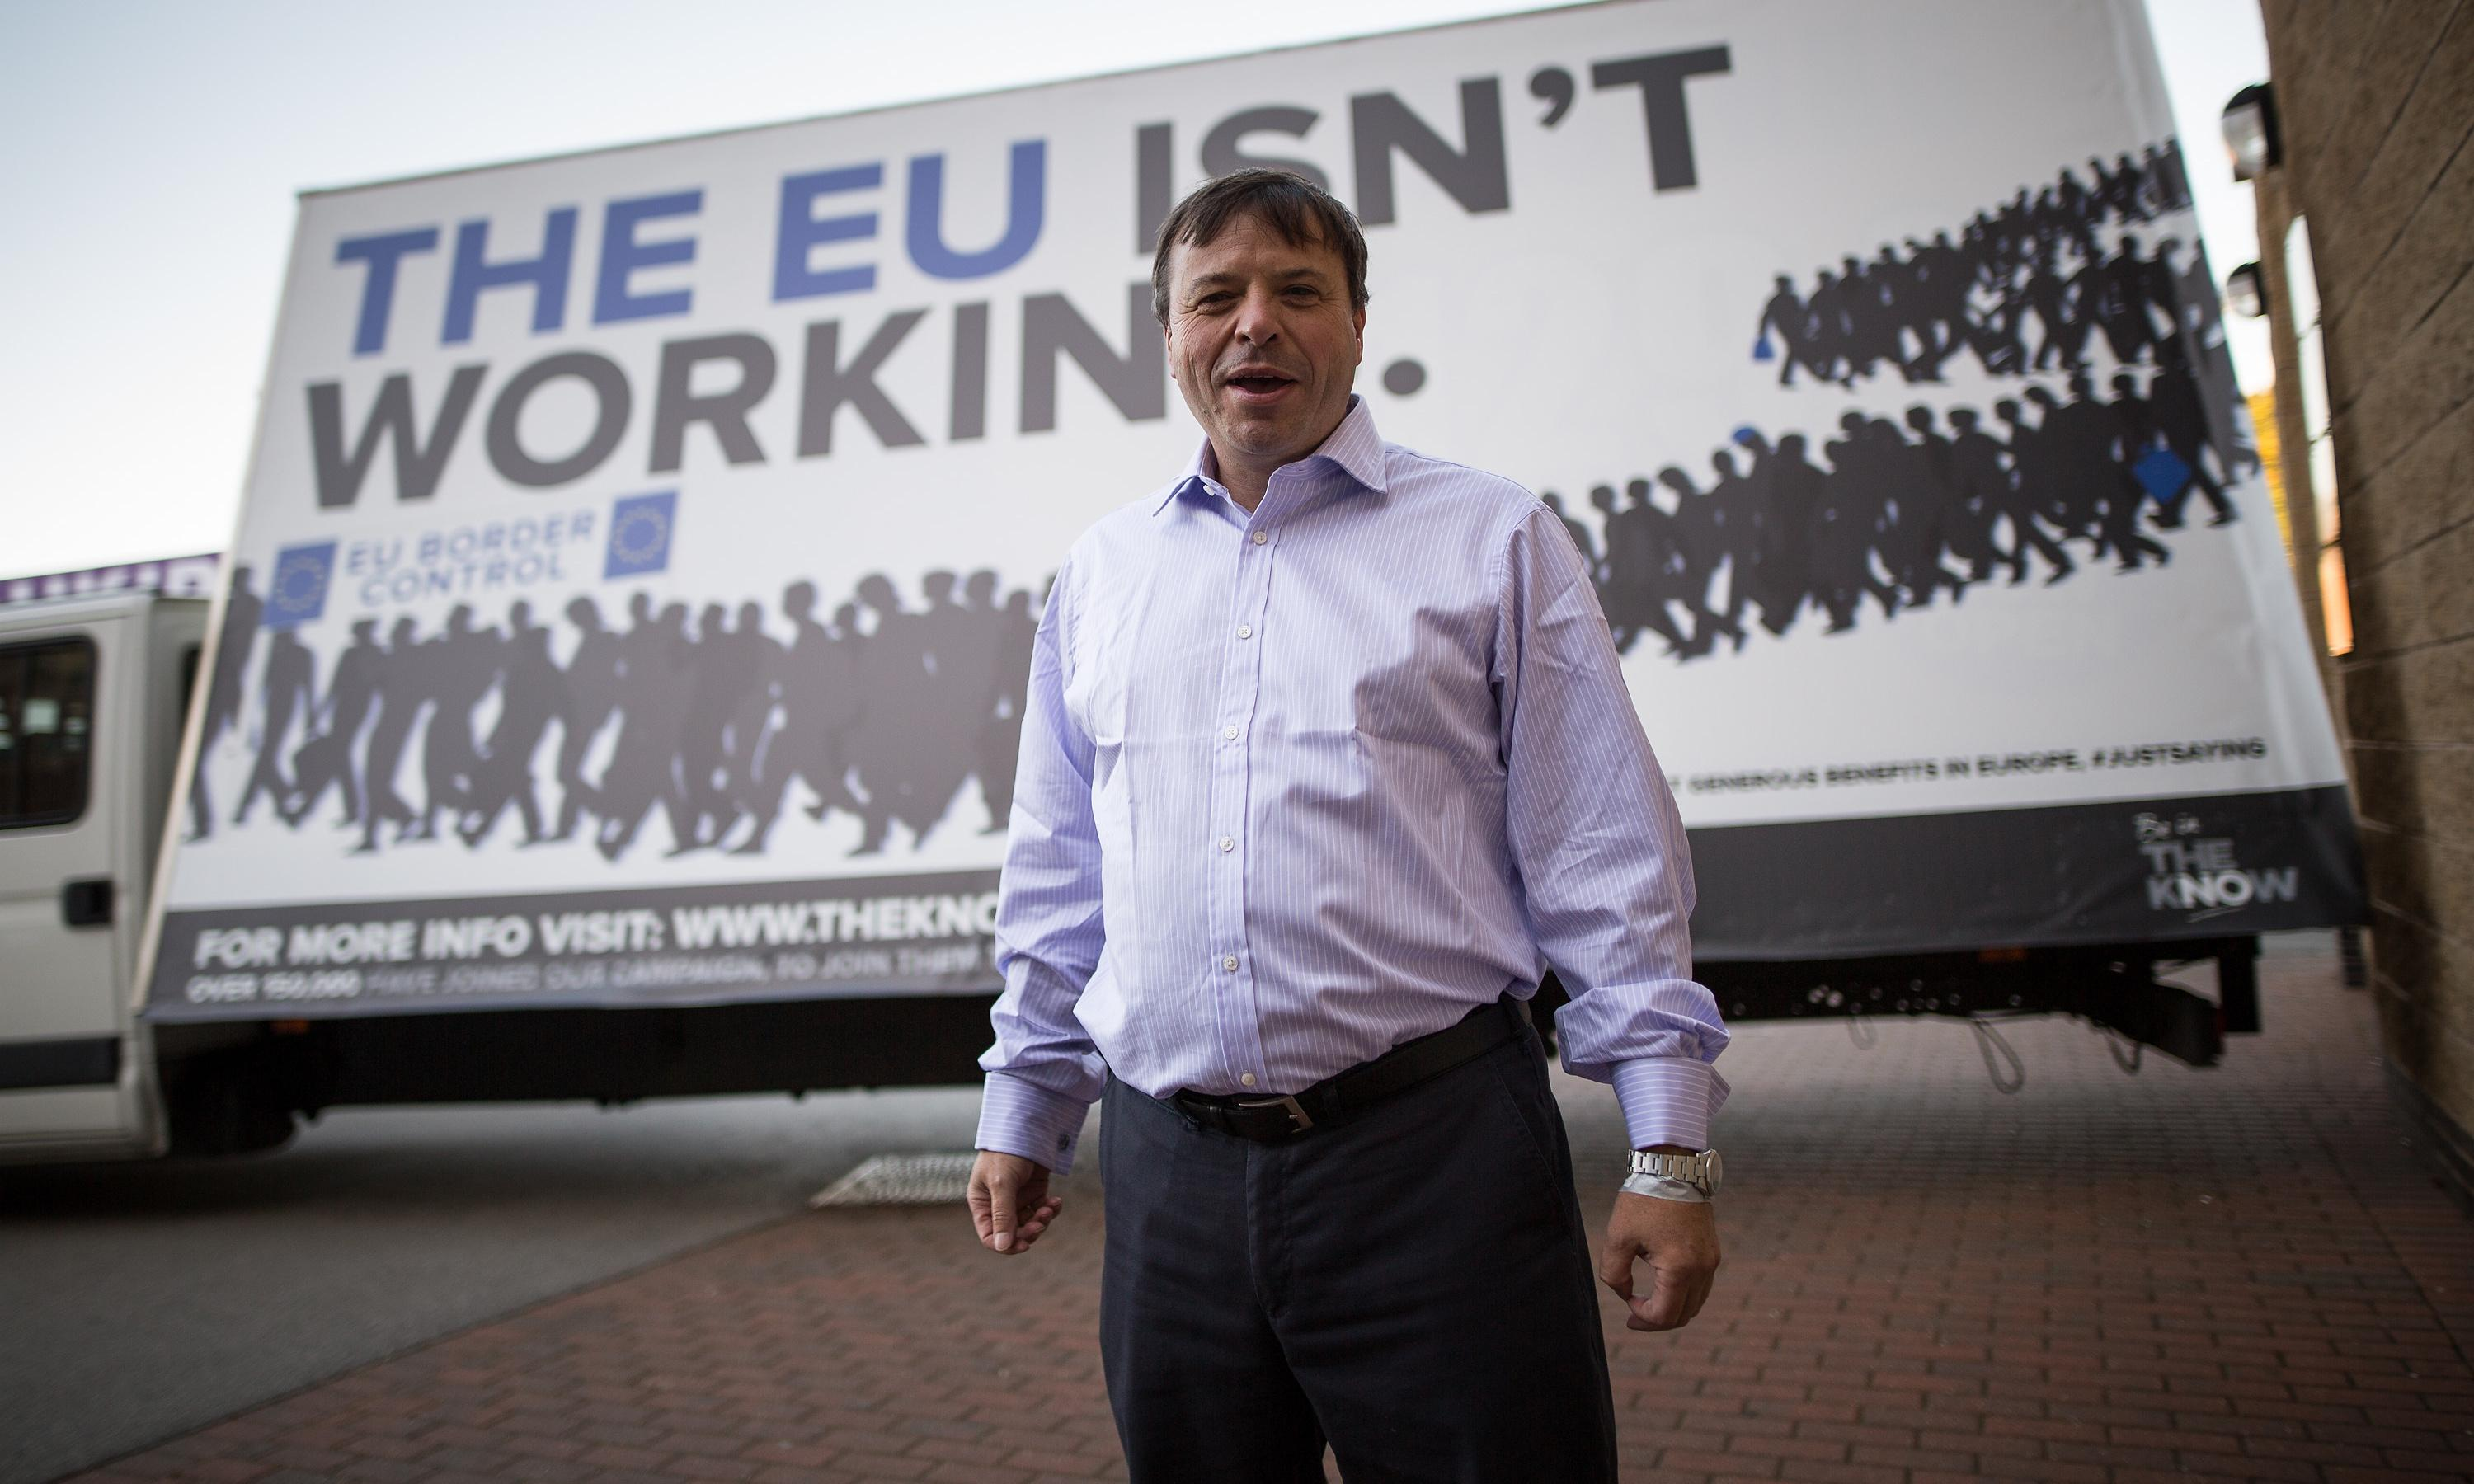 Arron Banks 'ignored deal to stop pro-Brexit ads' after Jo Cox death